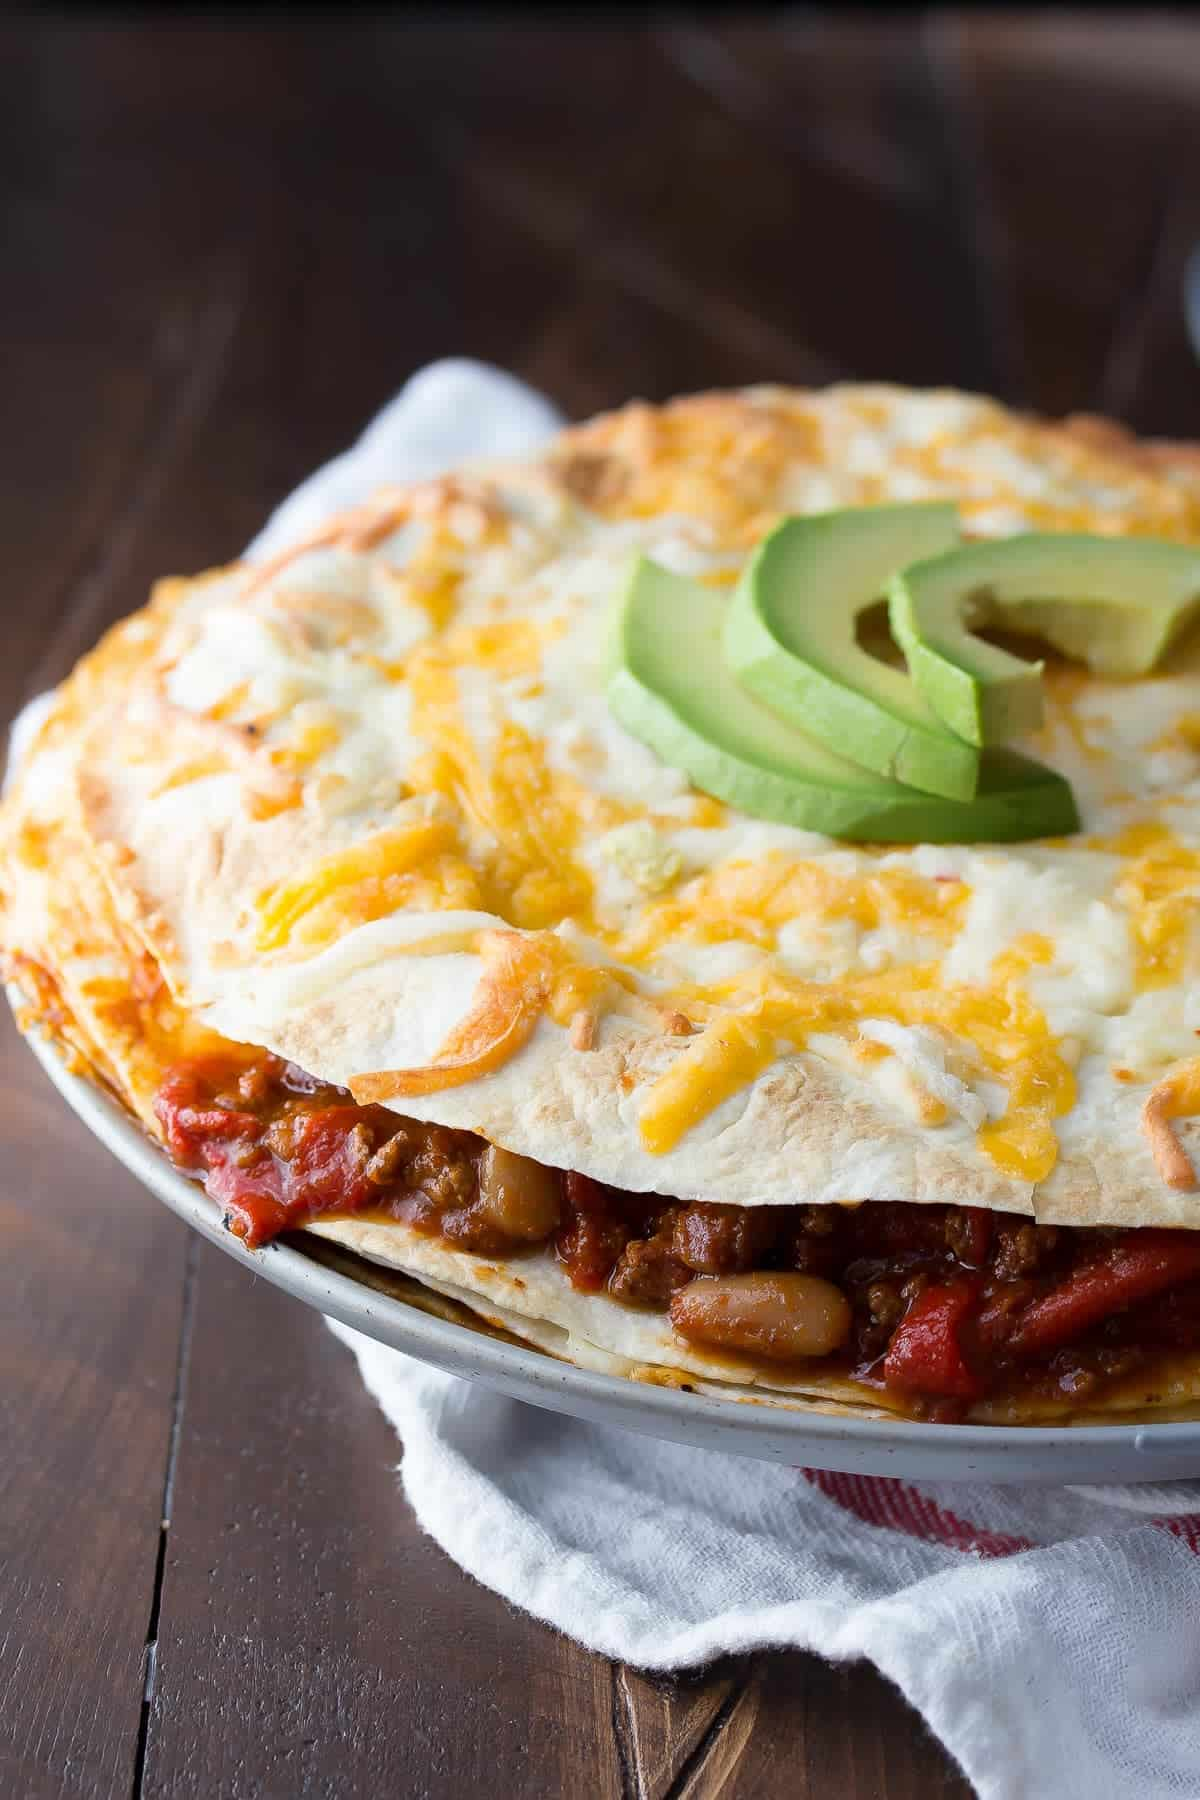 A fast and easy tortilla stack recipe that spreads leftover chili between tortillas with cheese.